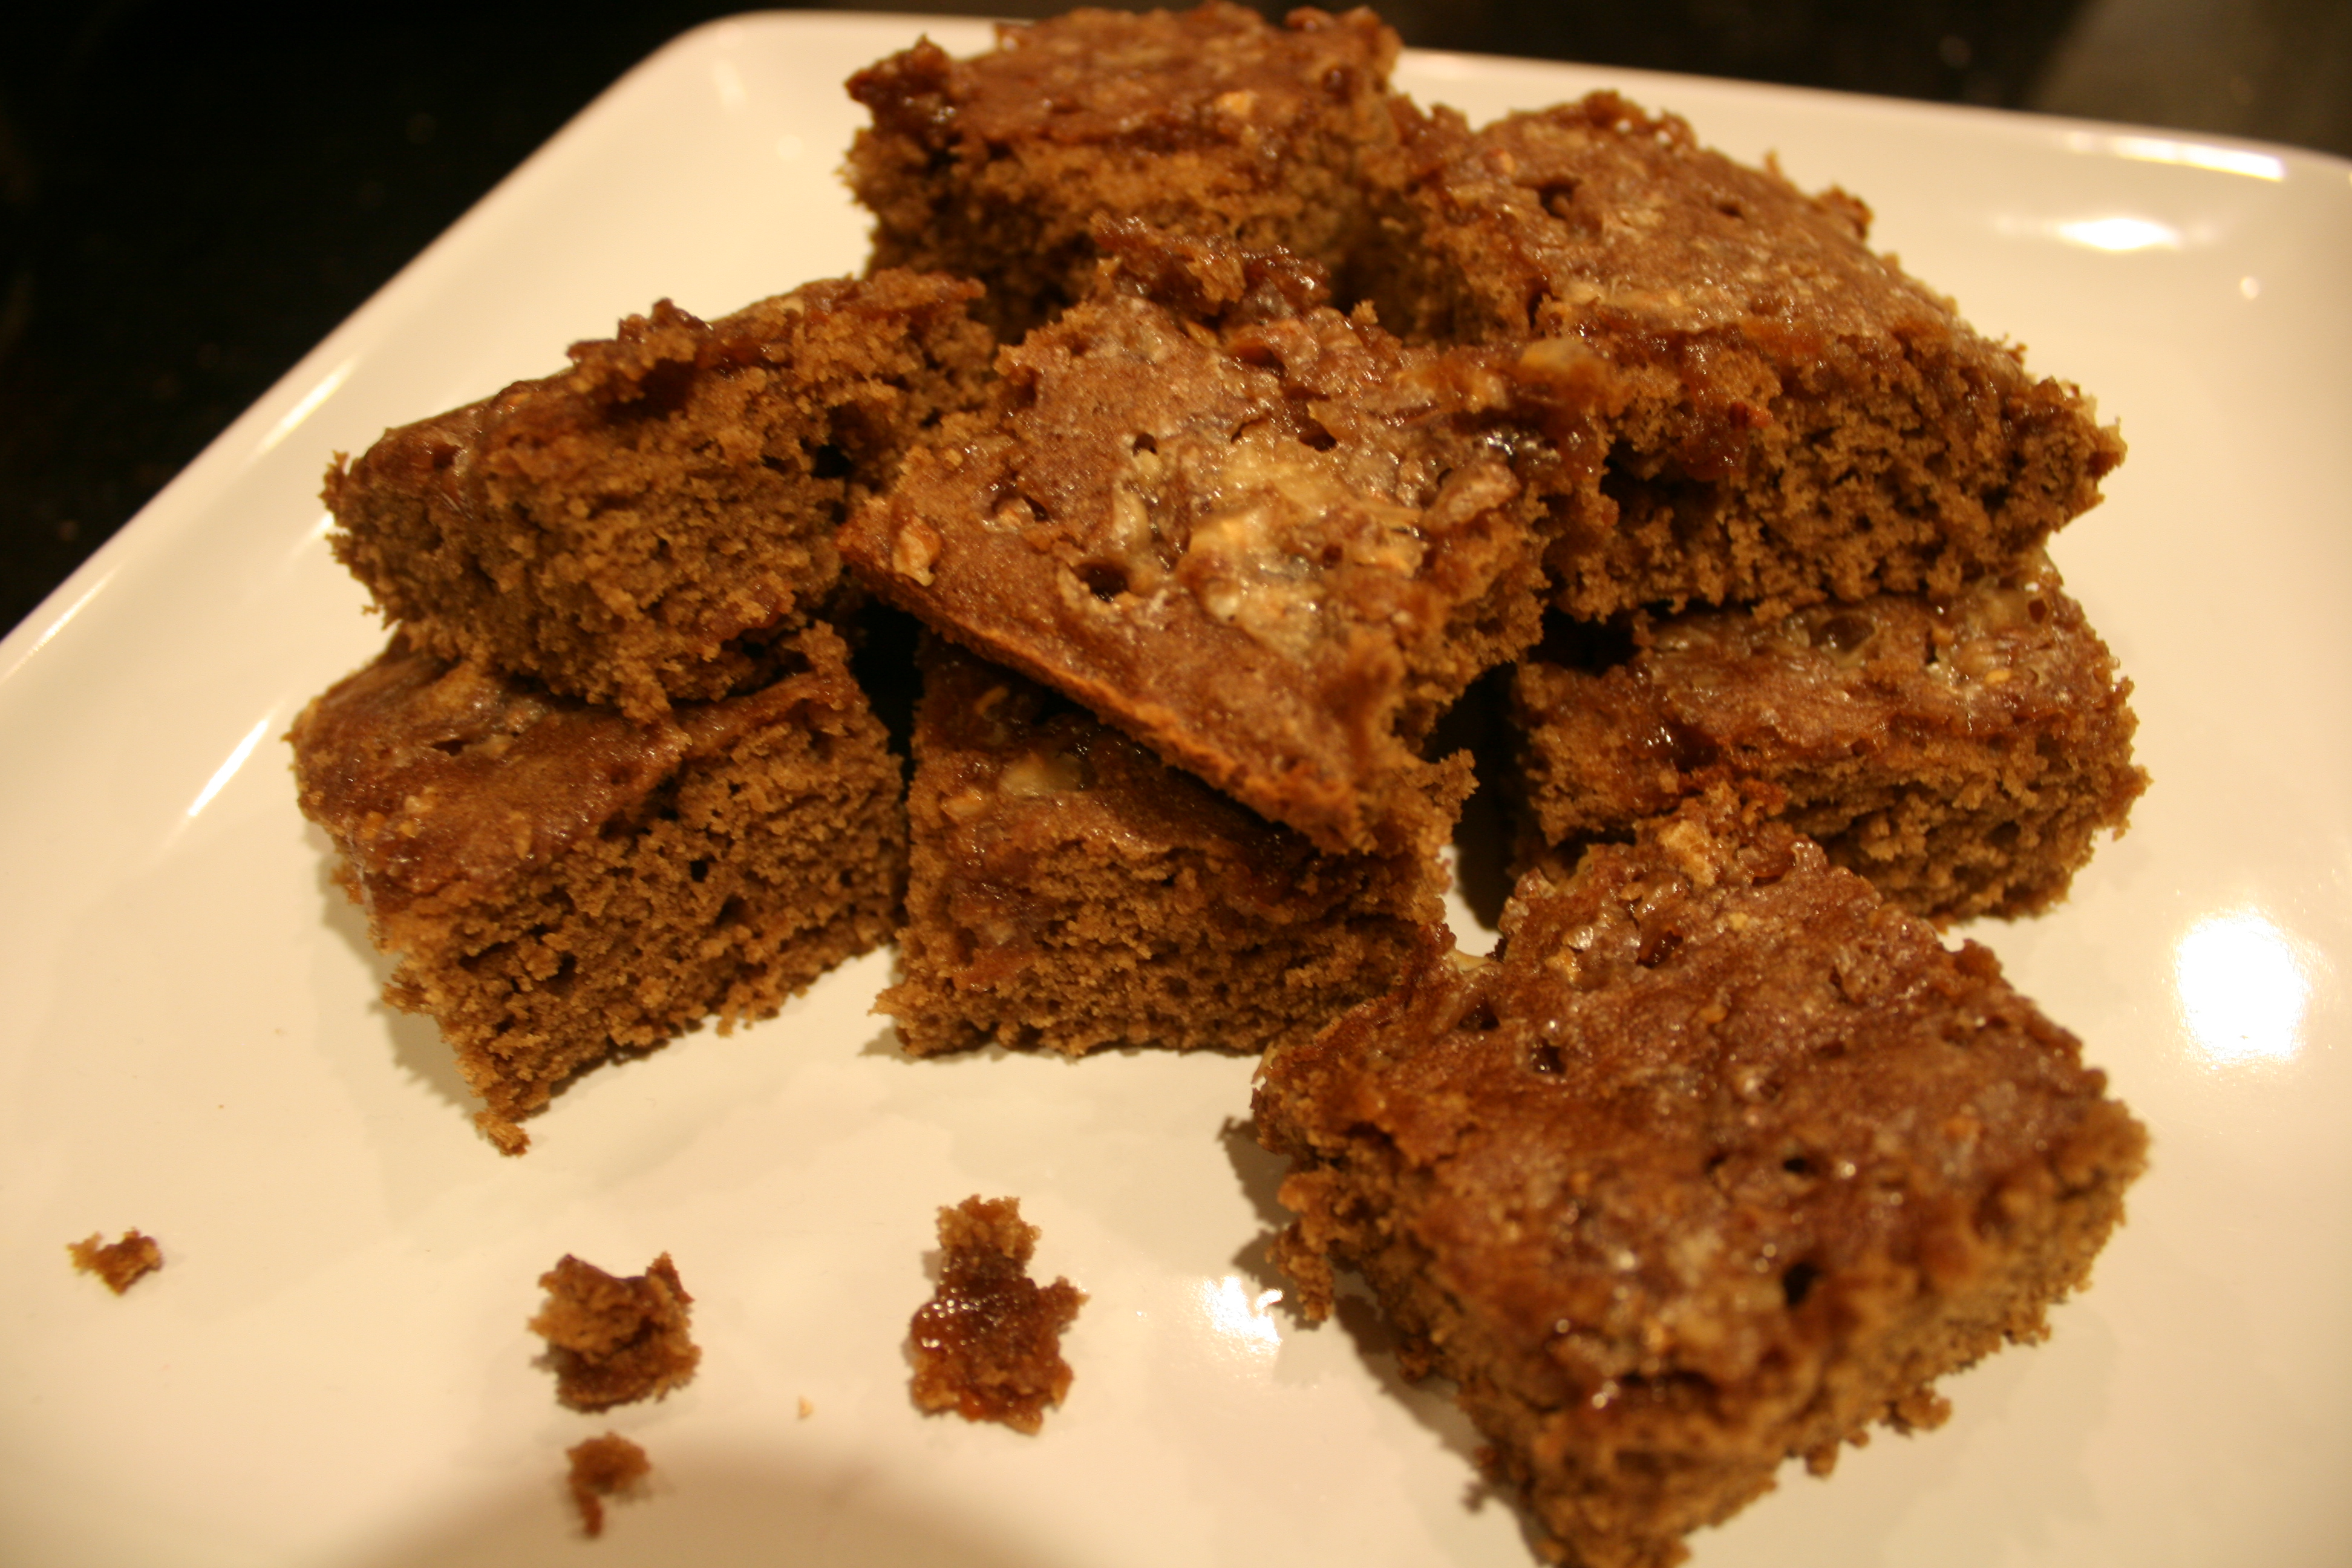 Recipes Course Desserts Cookies and Bars Chocolate Toffee Brownies